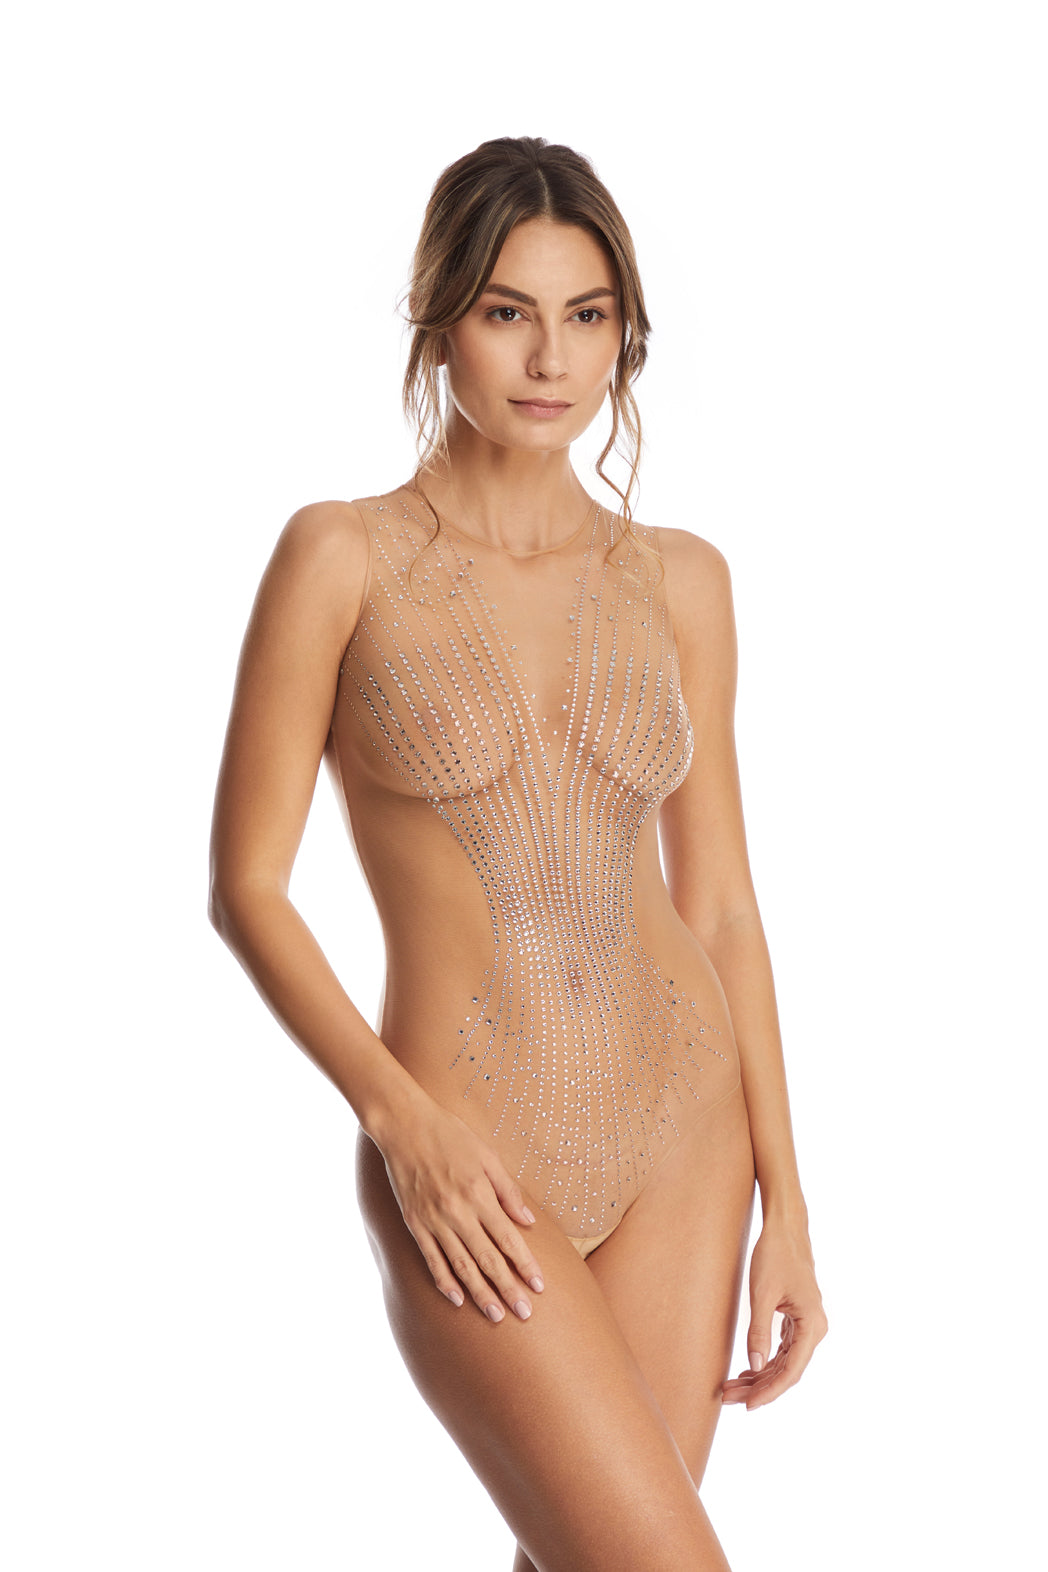 Nuit Interdit Bodysuit with Swarovski Elements in Nude - I.D. Sarrieri